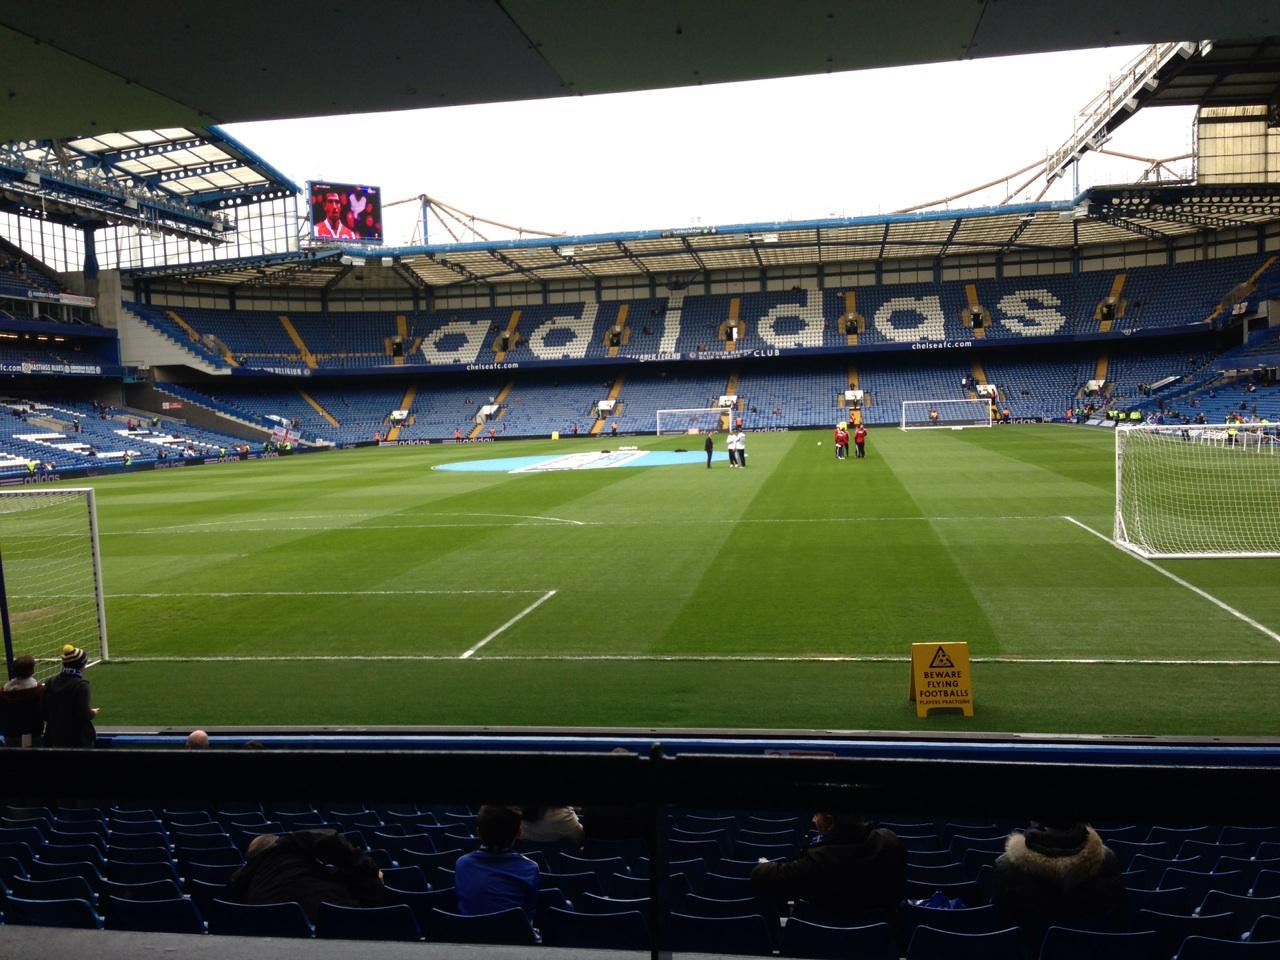 Stamford Bridge Section The Shed End lower Row 15 Seat 79